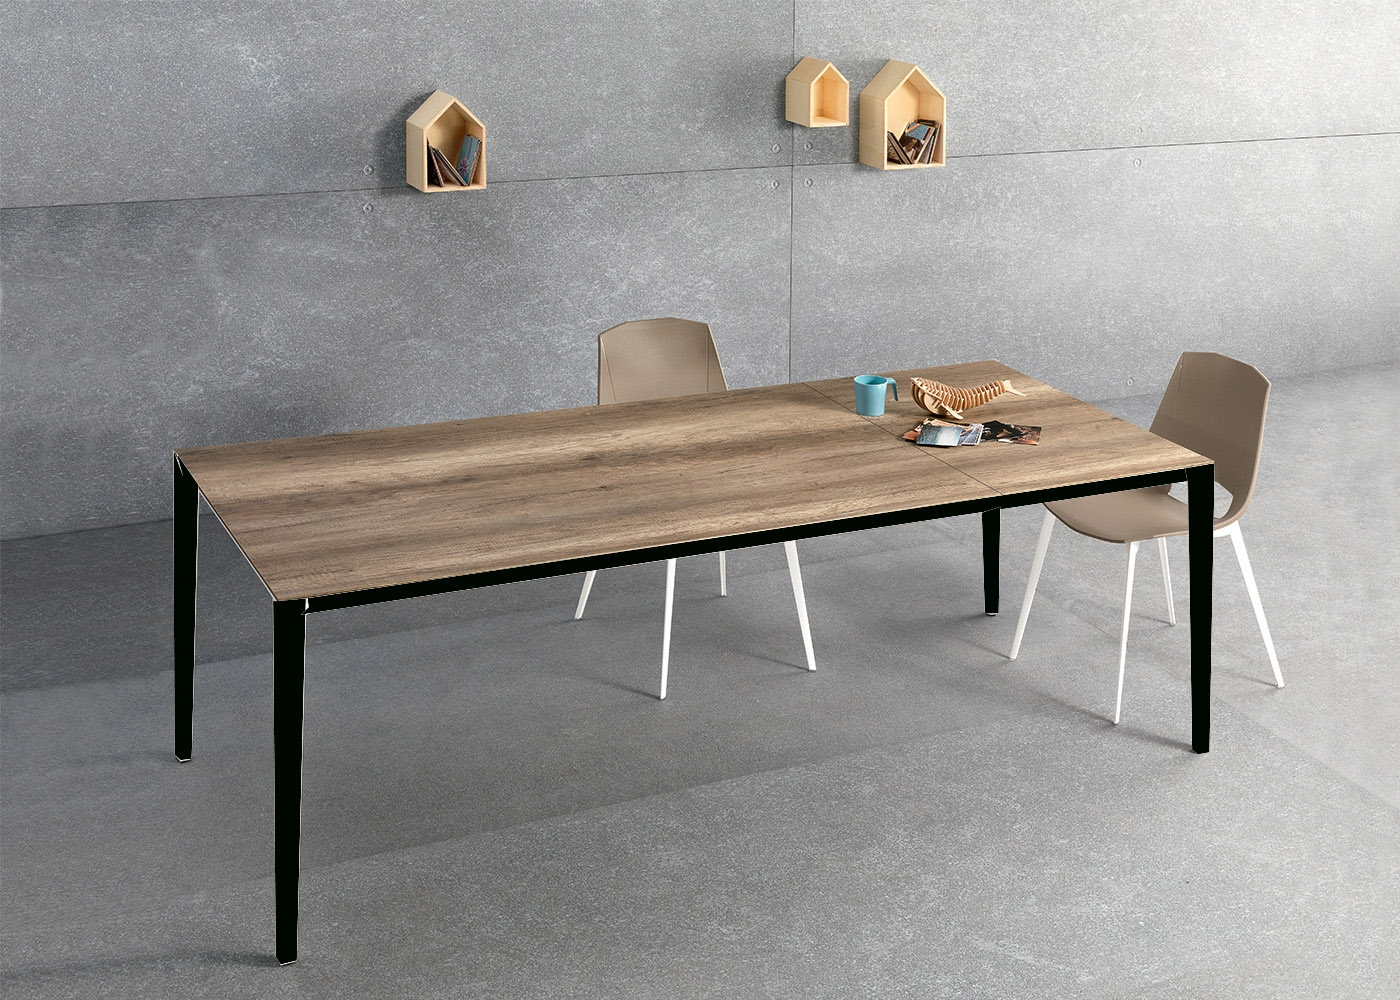 Table de repas en ch ne ou noyer au design sobre et for Table de salle a manger 200 cm